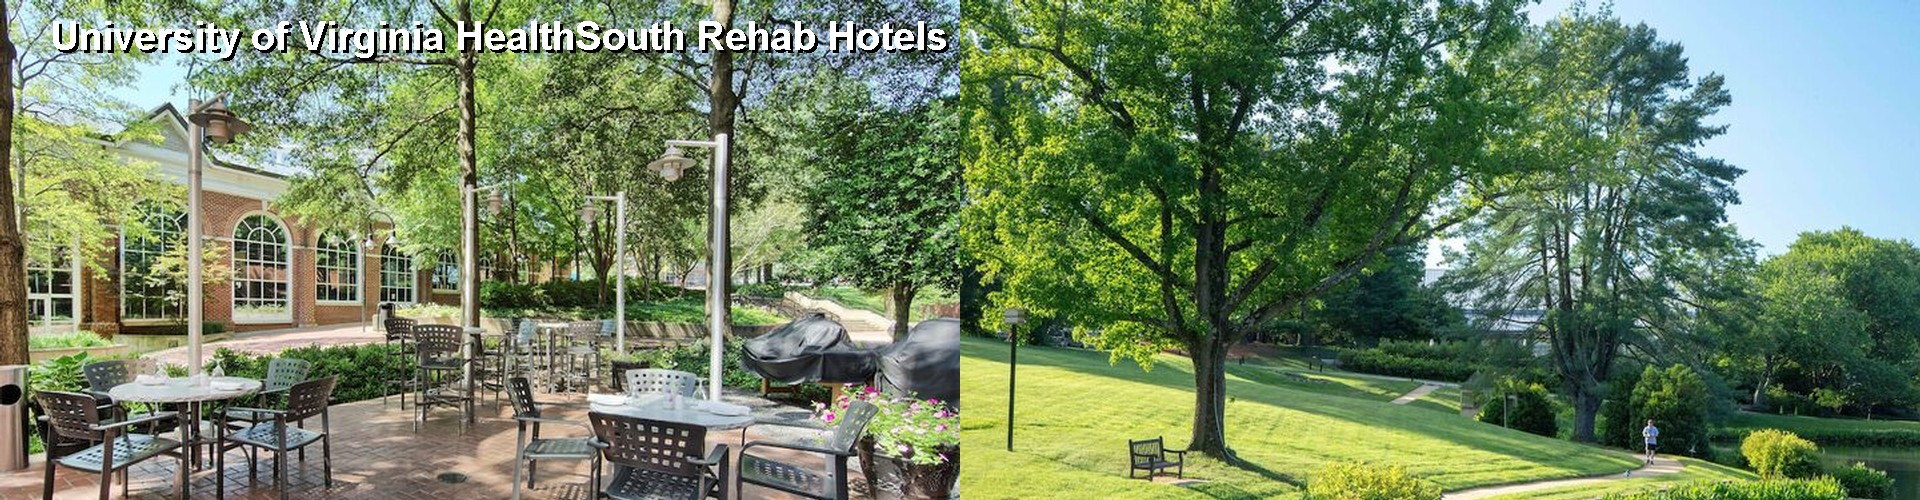 5 Best Hotels near University of Virginia HealthSouth Rehab